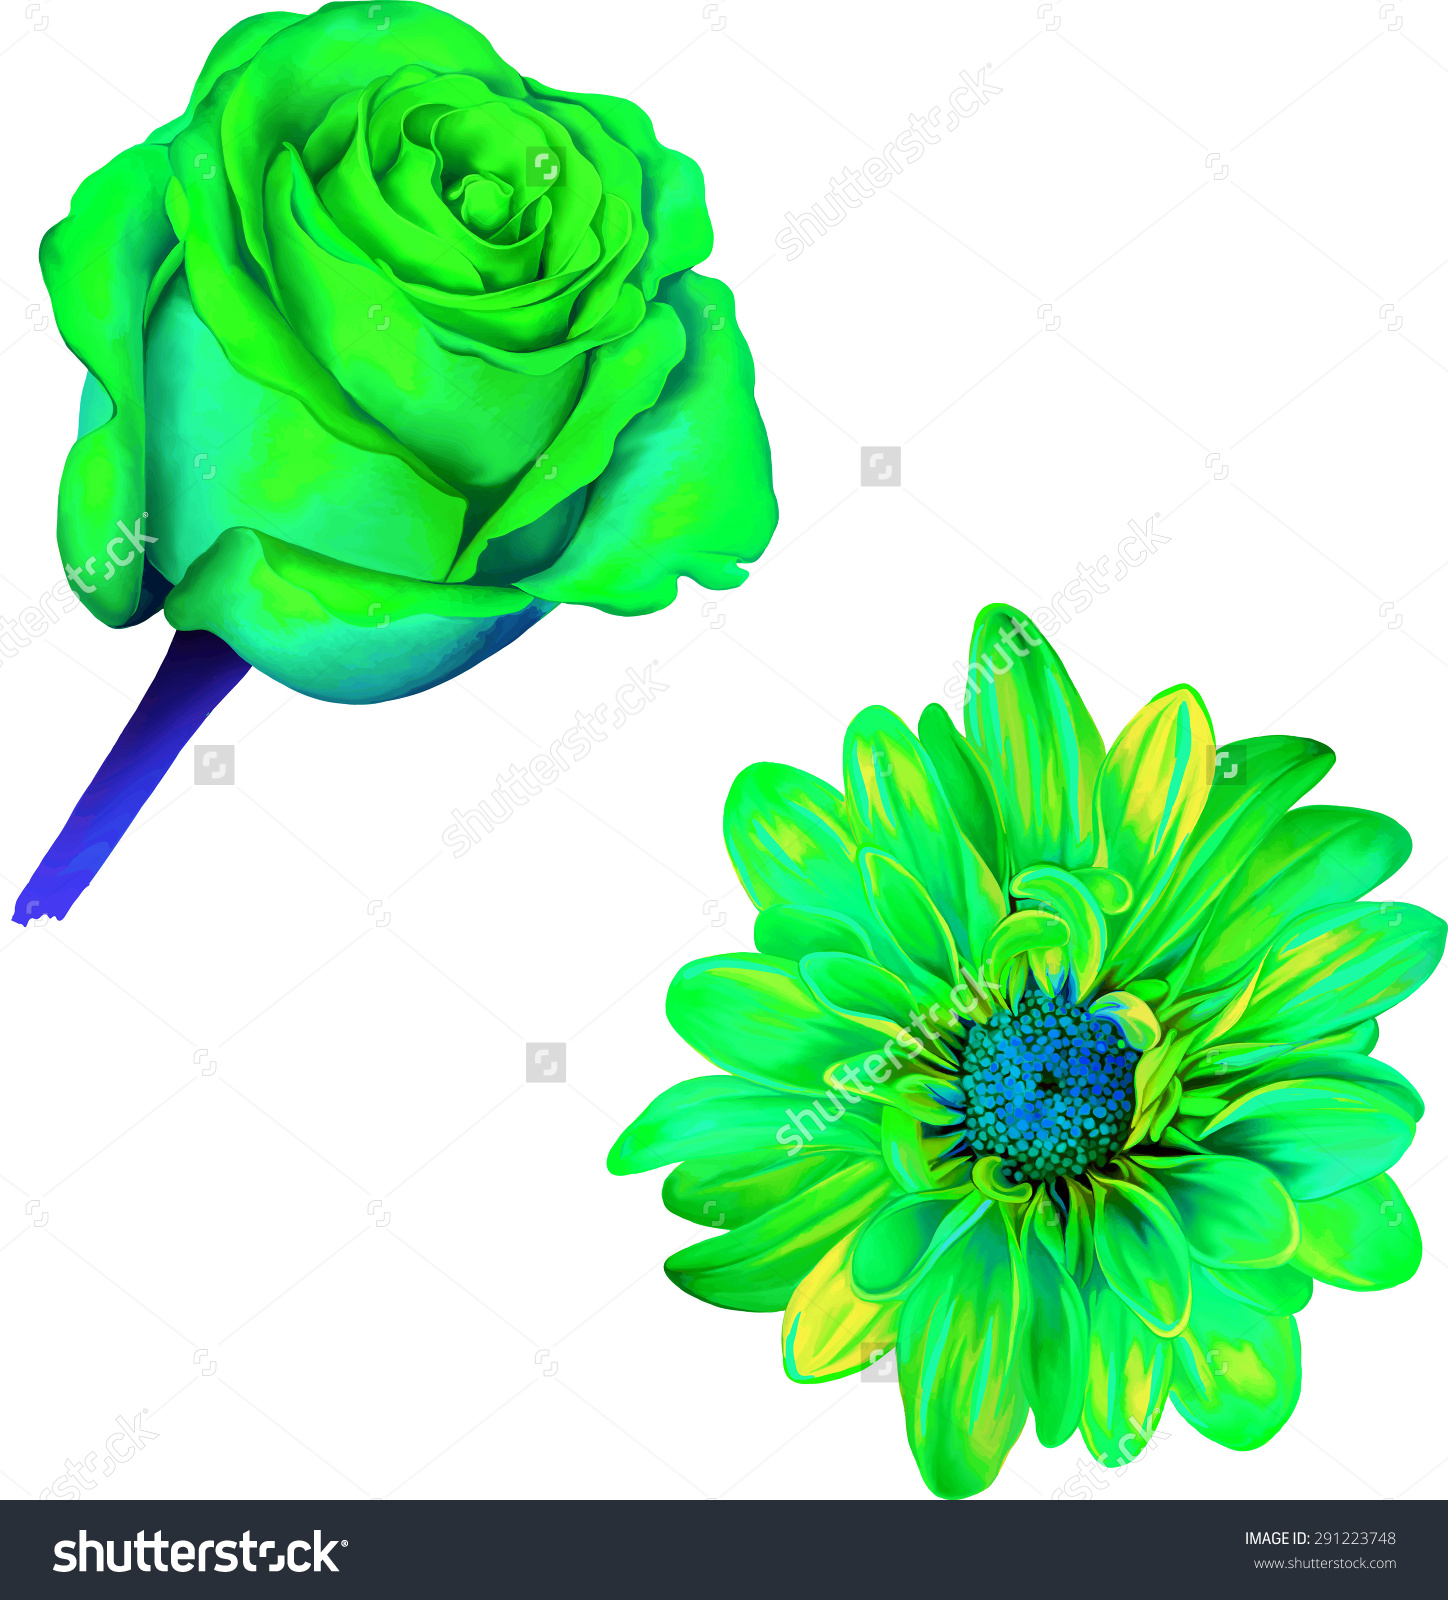 Green Rose clipart #10, Download drawings